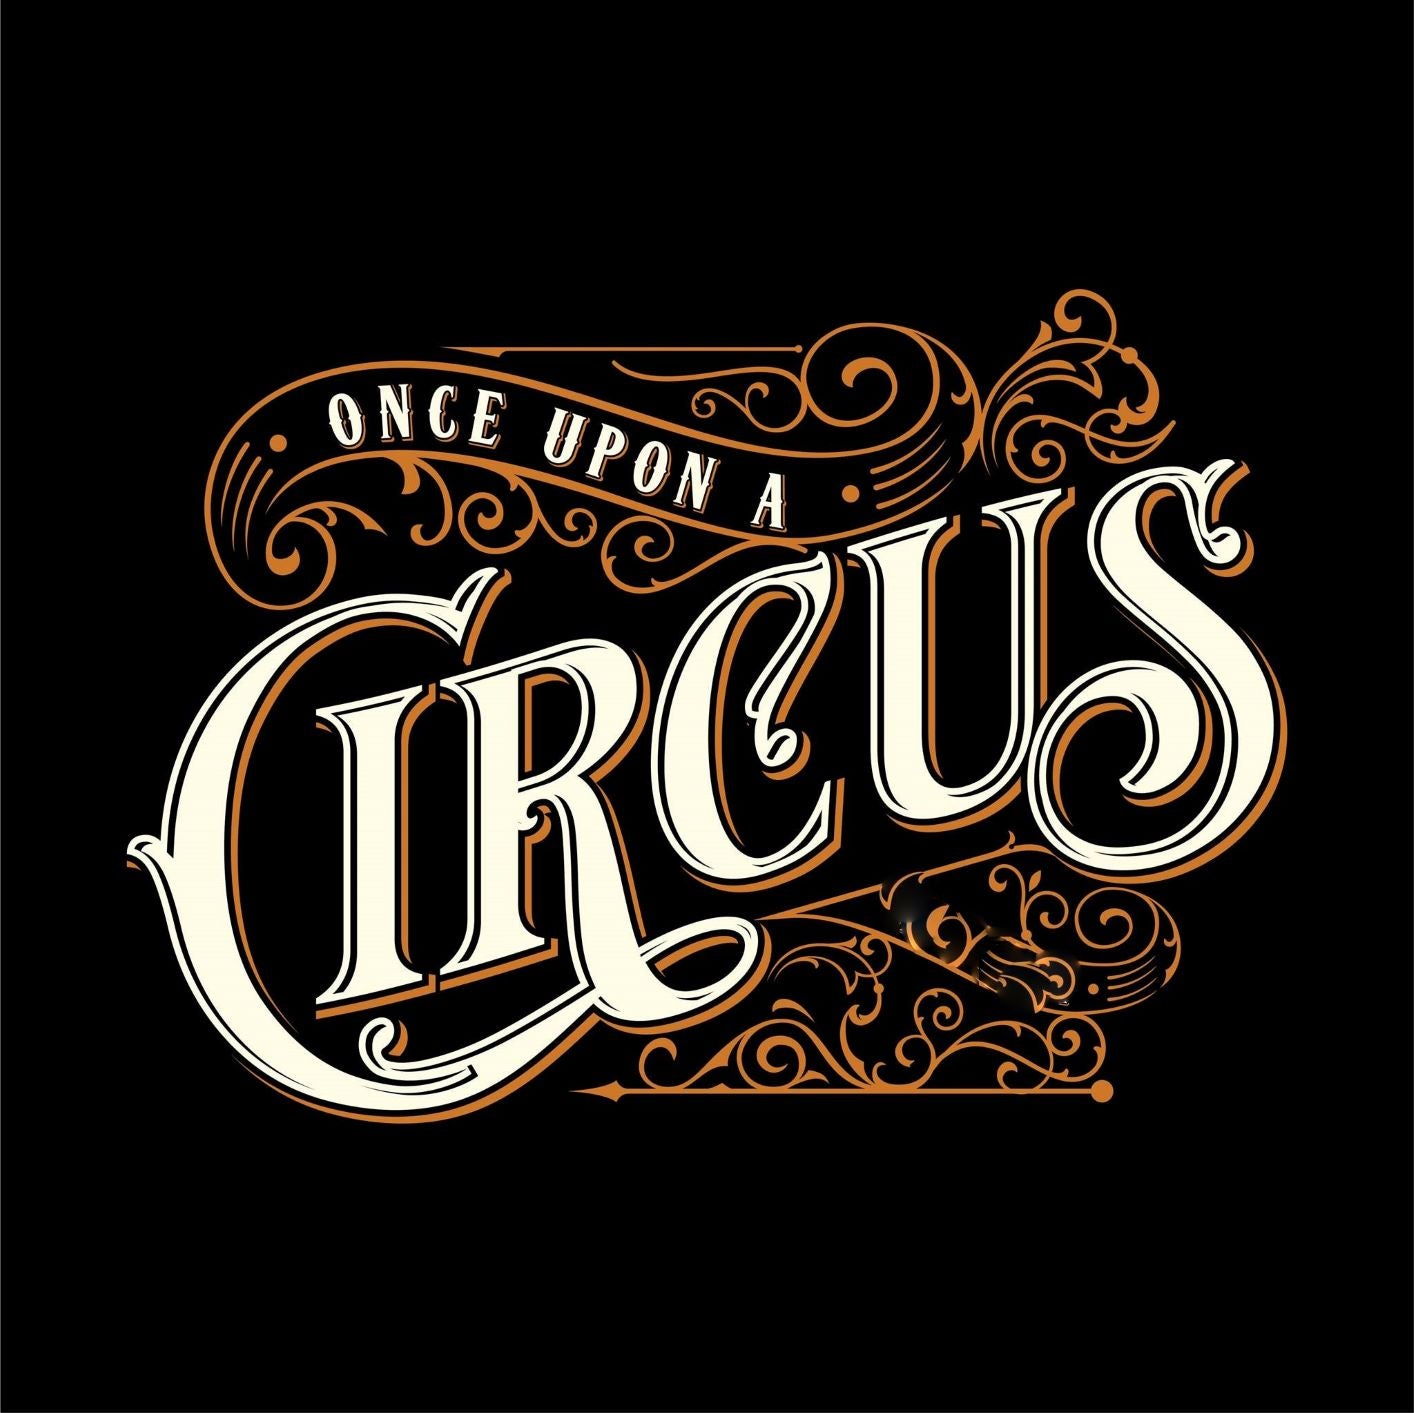 More Info for CircusWest Presents: Once Upon a Circus